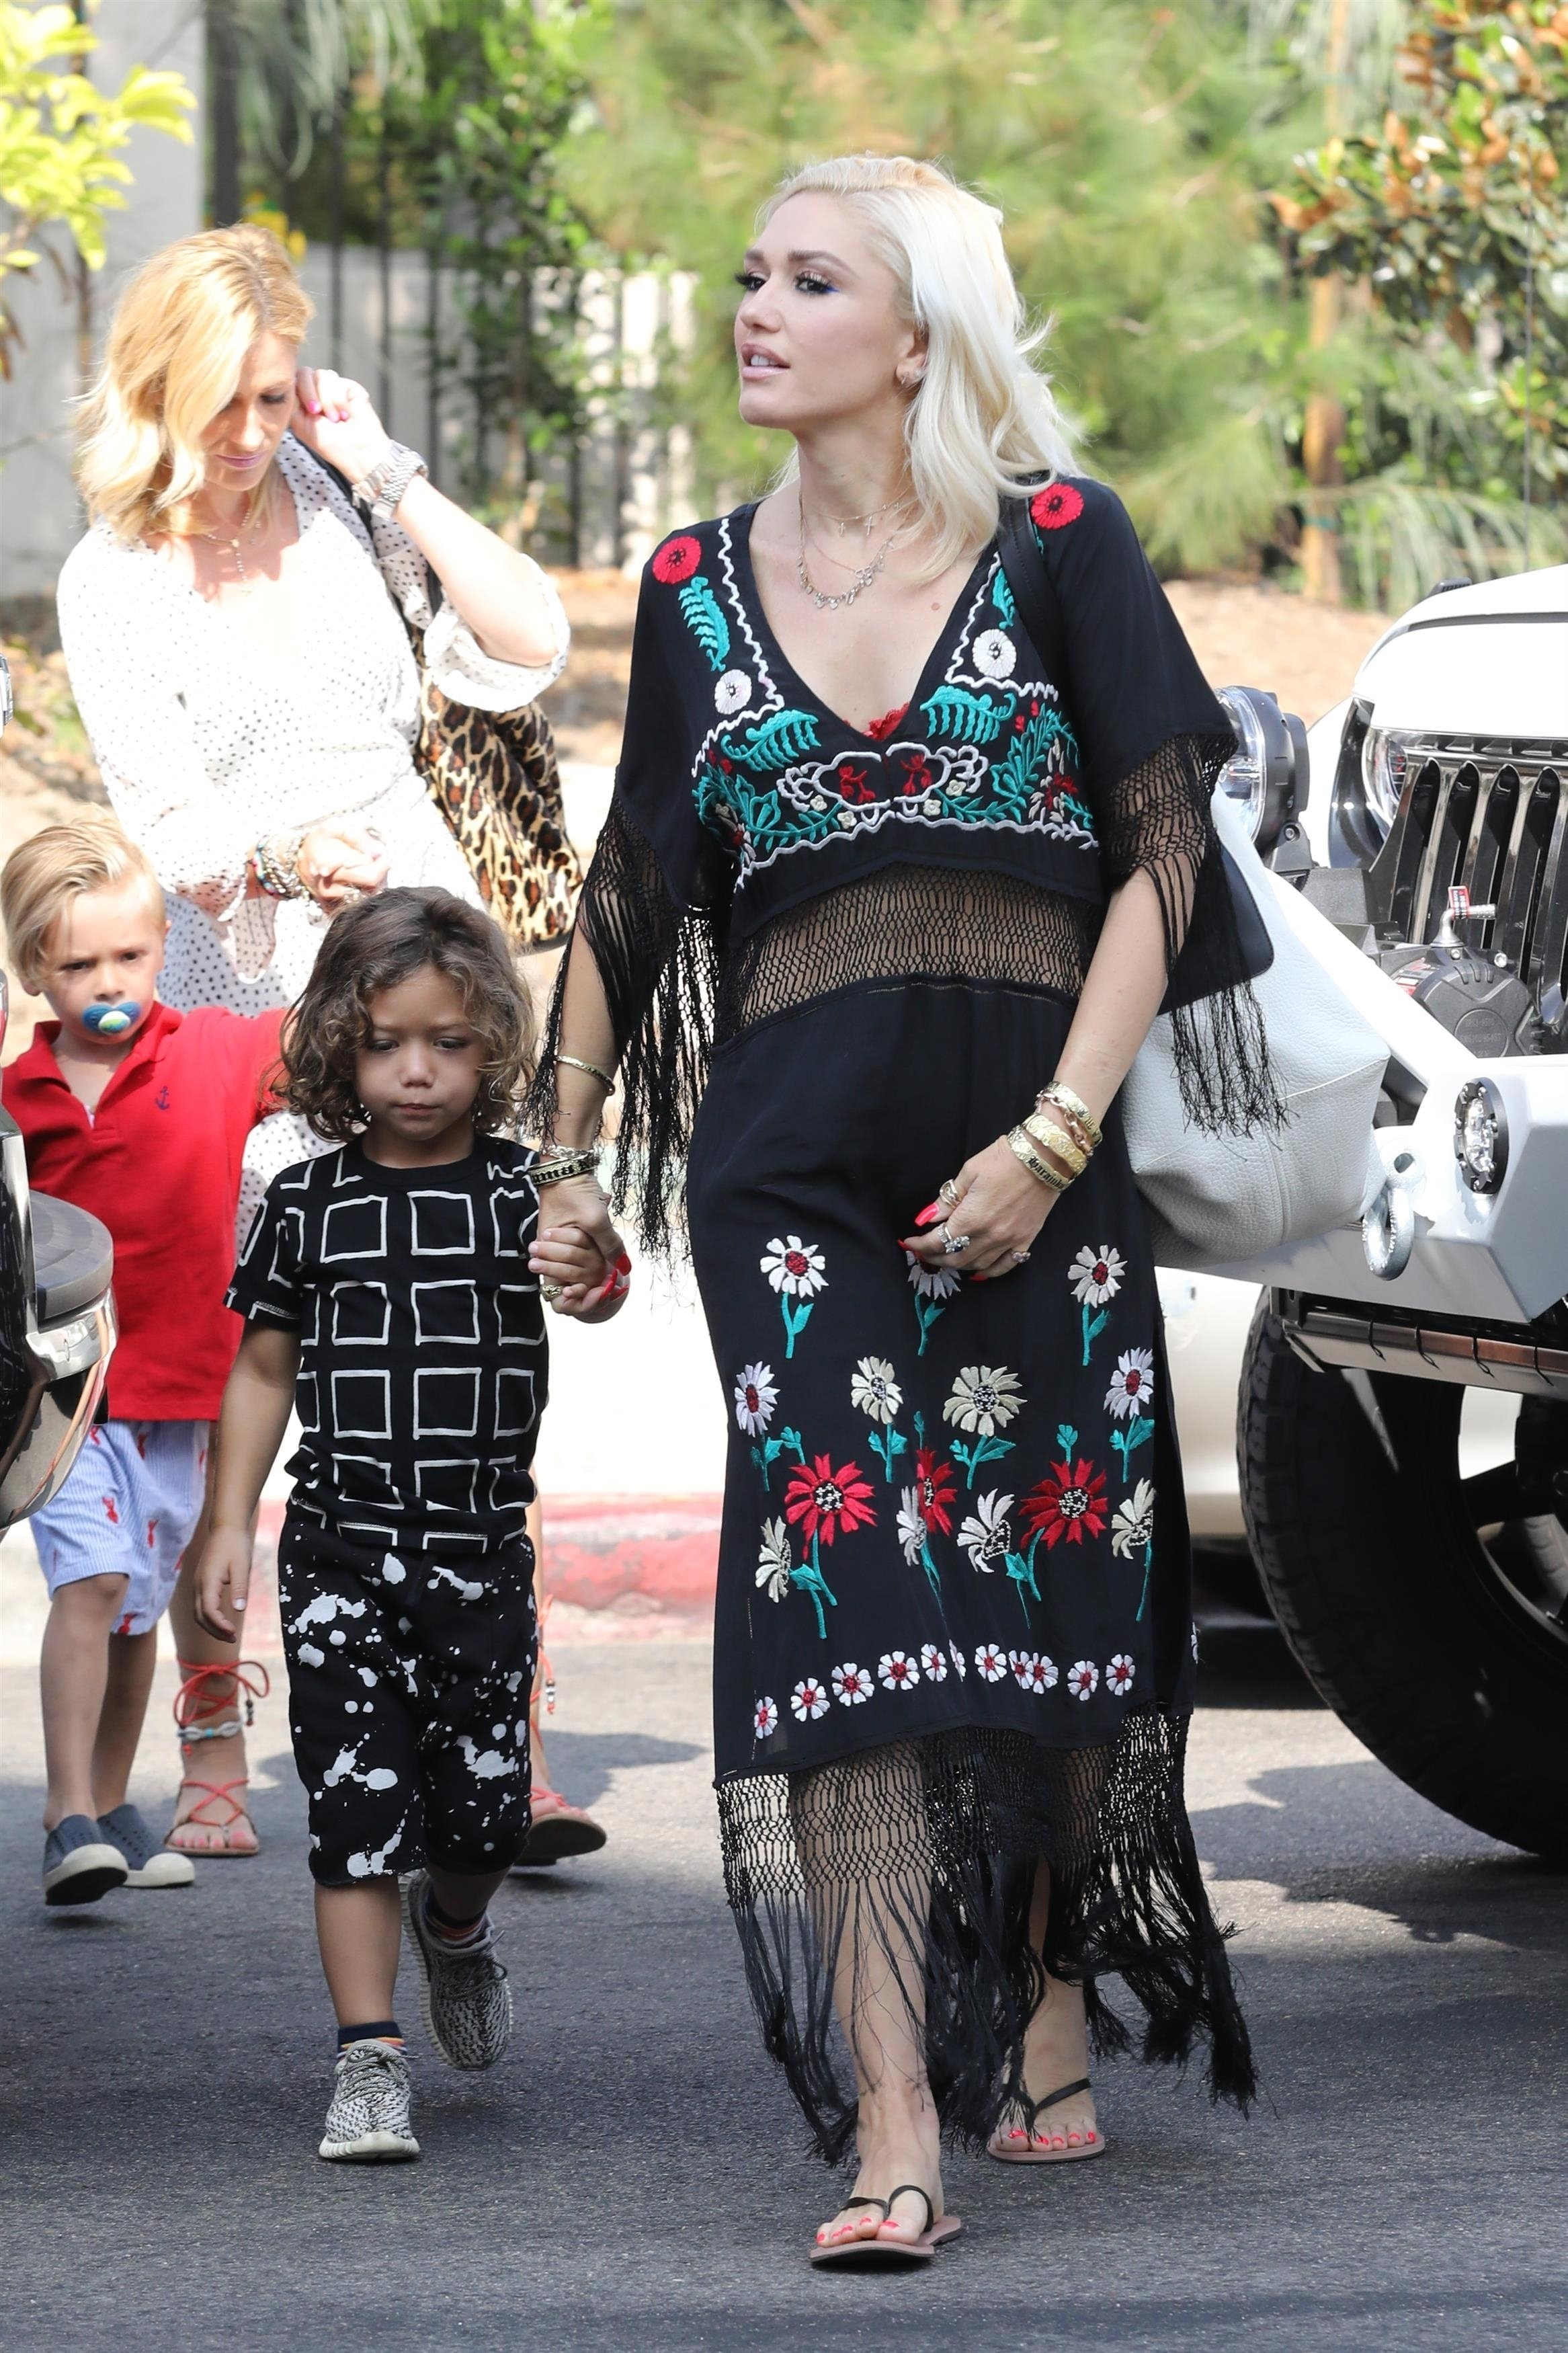 Los Angeles, CA  - Stylish mom and singer Gwen Stefani looks glam as she arrives to church with her boys, Kingston, Zuma, and Apollo. The platinum star is wearing an embroidered fringe frock paired with flip flops for Sunday service.  Pictured: Gwen Stefani  BACKGRID USA 13 AUGUST 2017, Image: 344954227, License: Rights-managed, Restrictions: , Model Release: no, Credit line: Profimedia, AKM-GSI